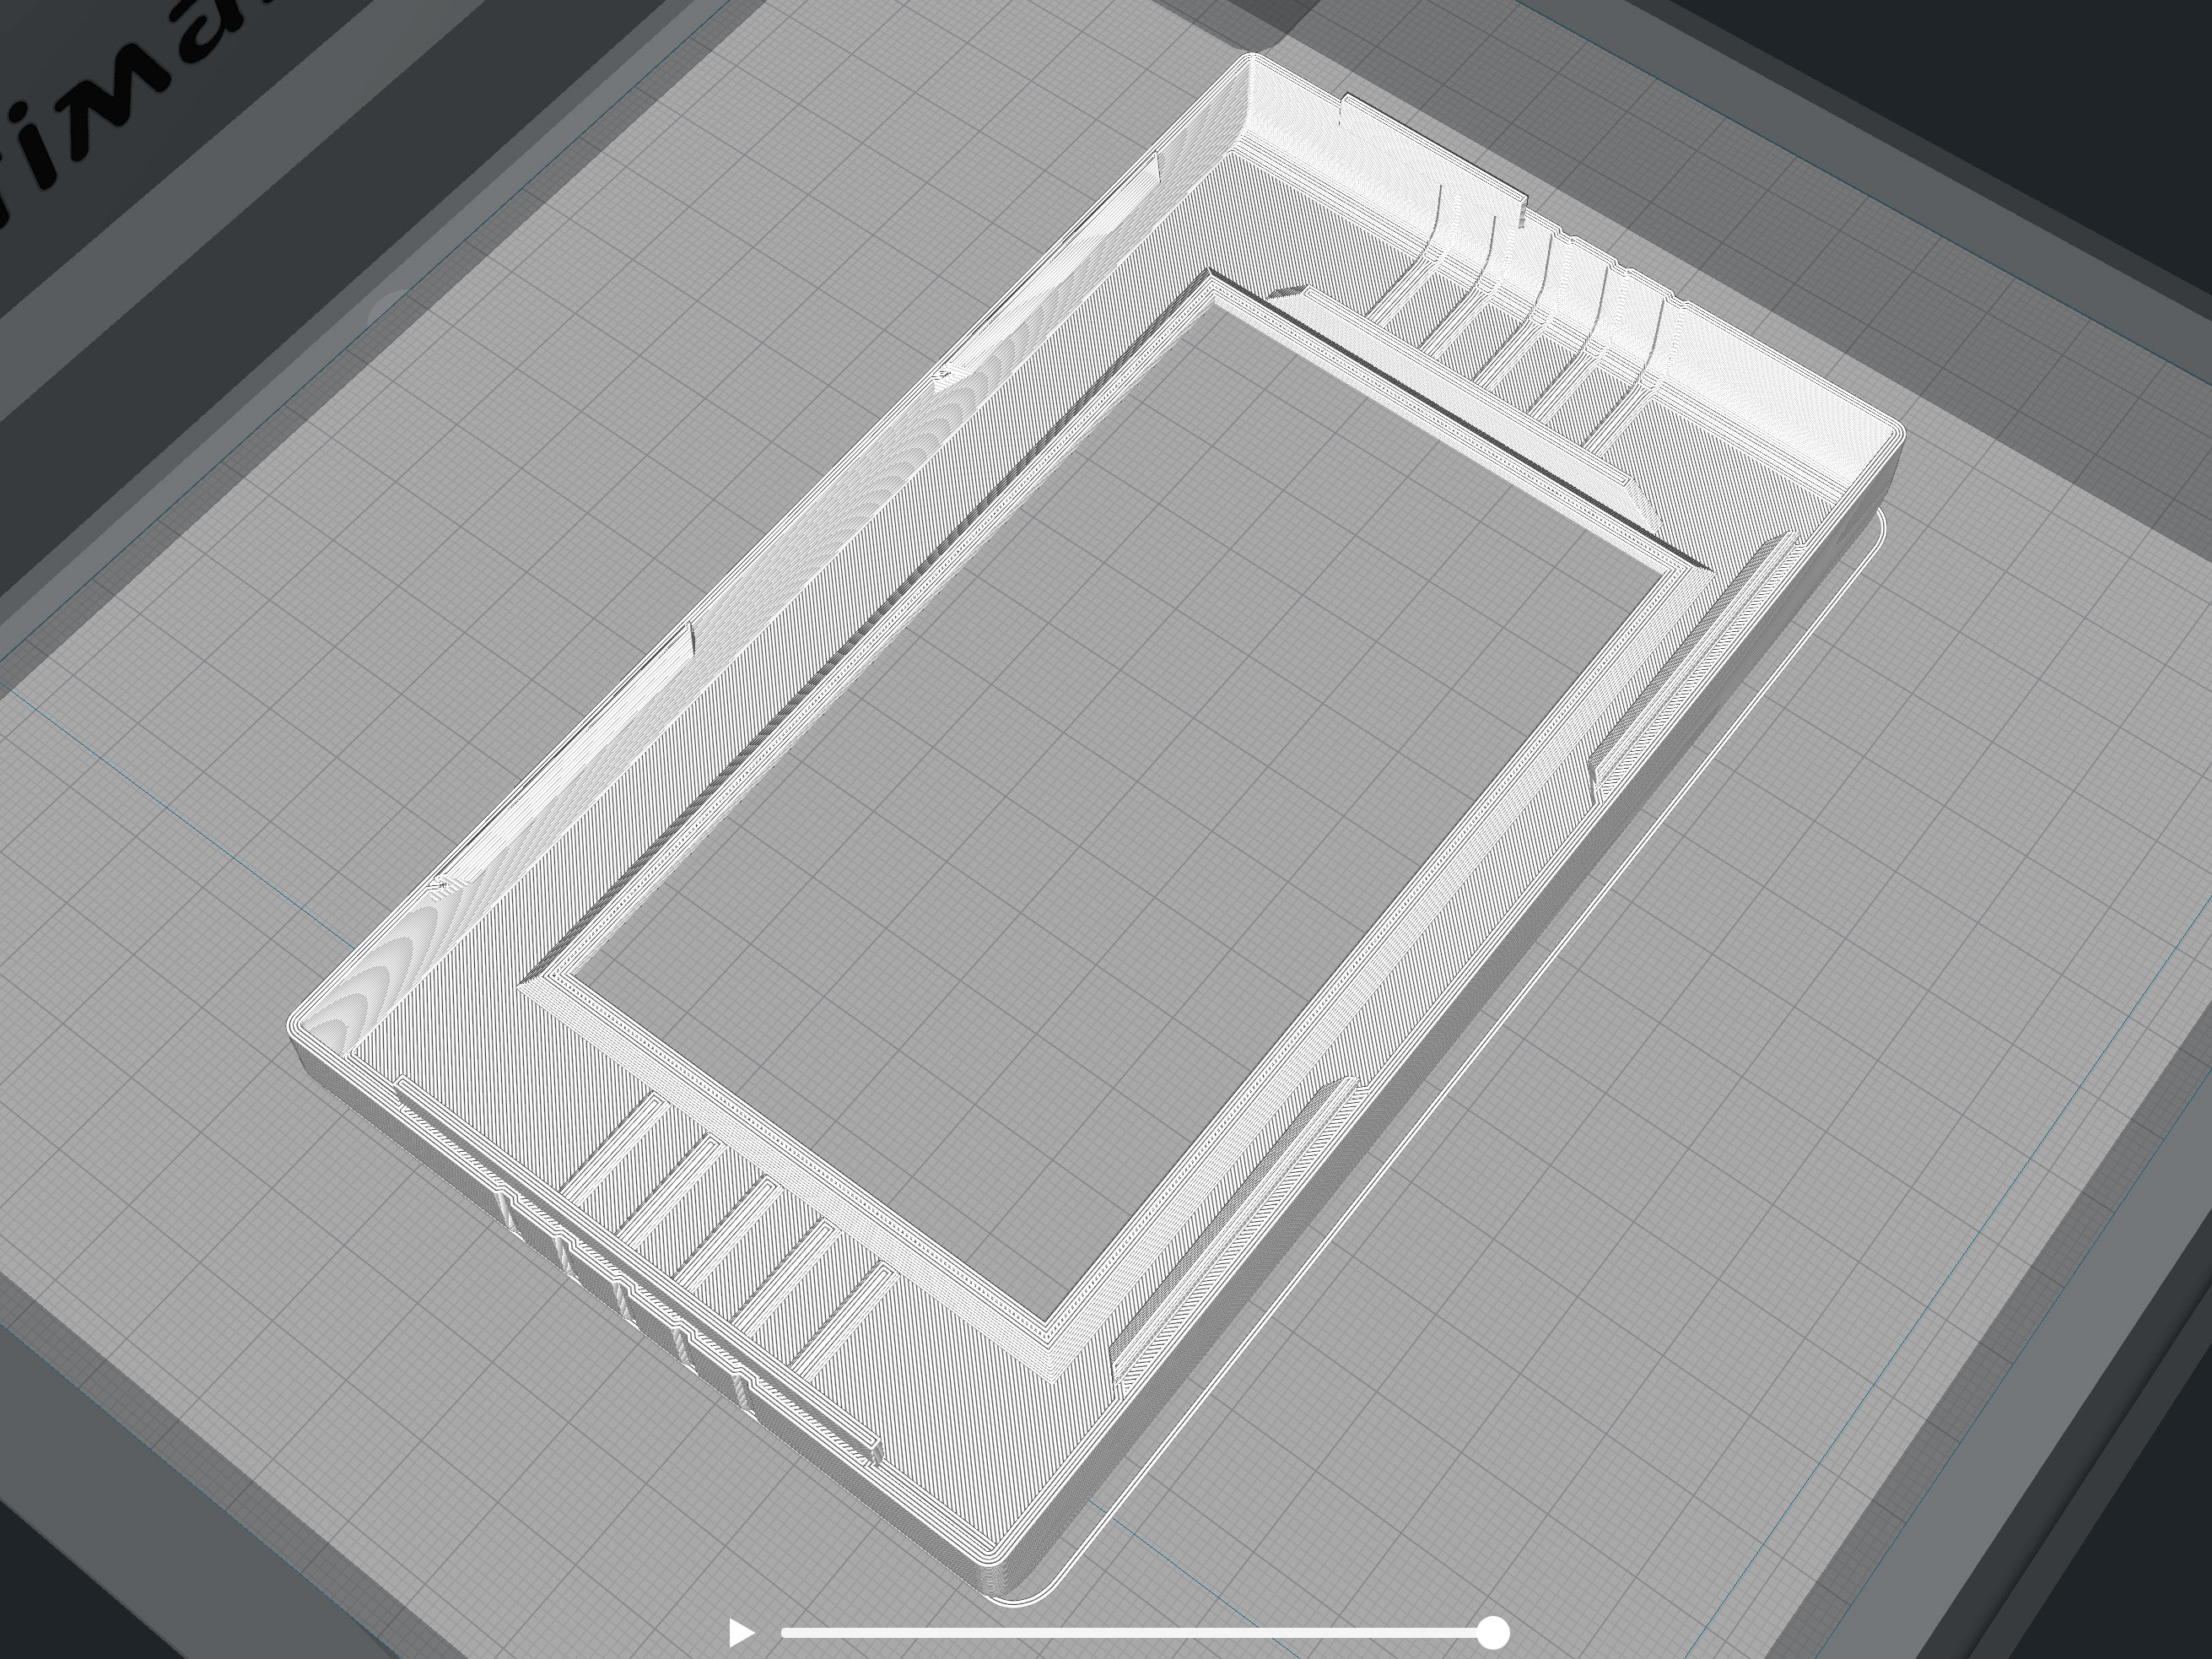 led_strips_cura-slice.jpg